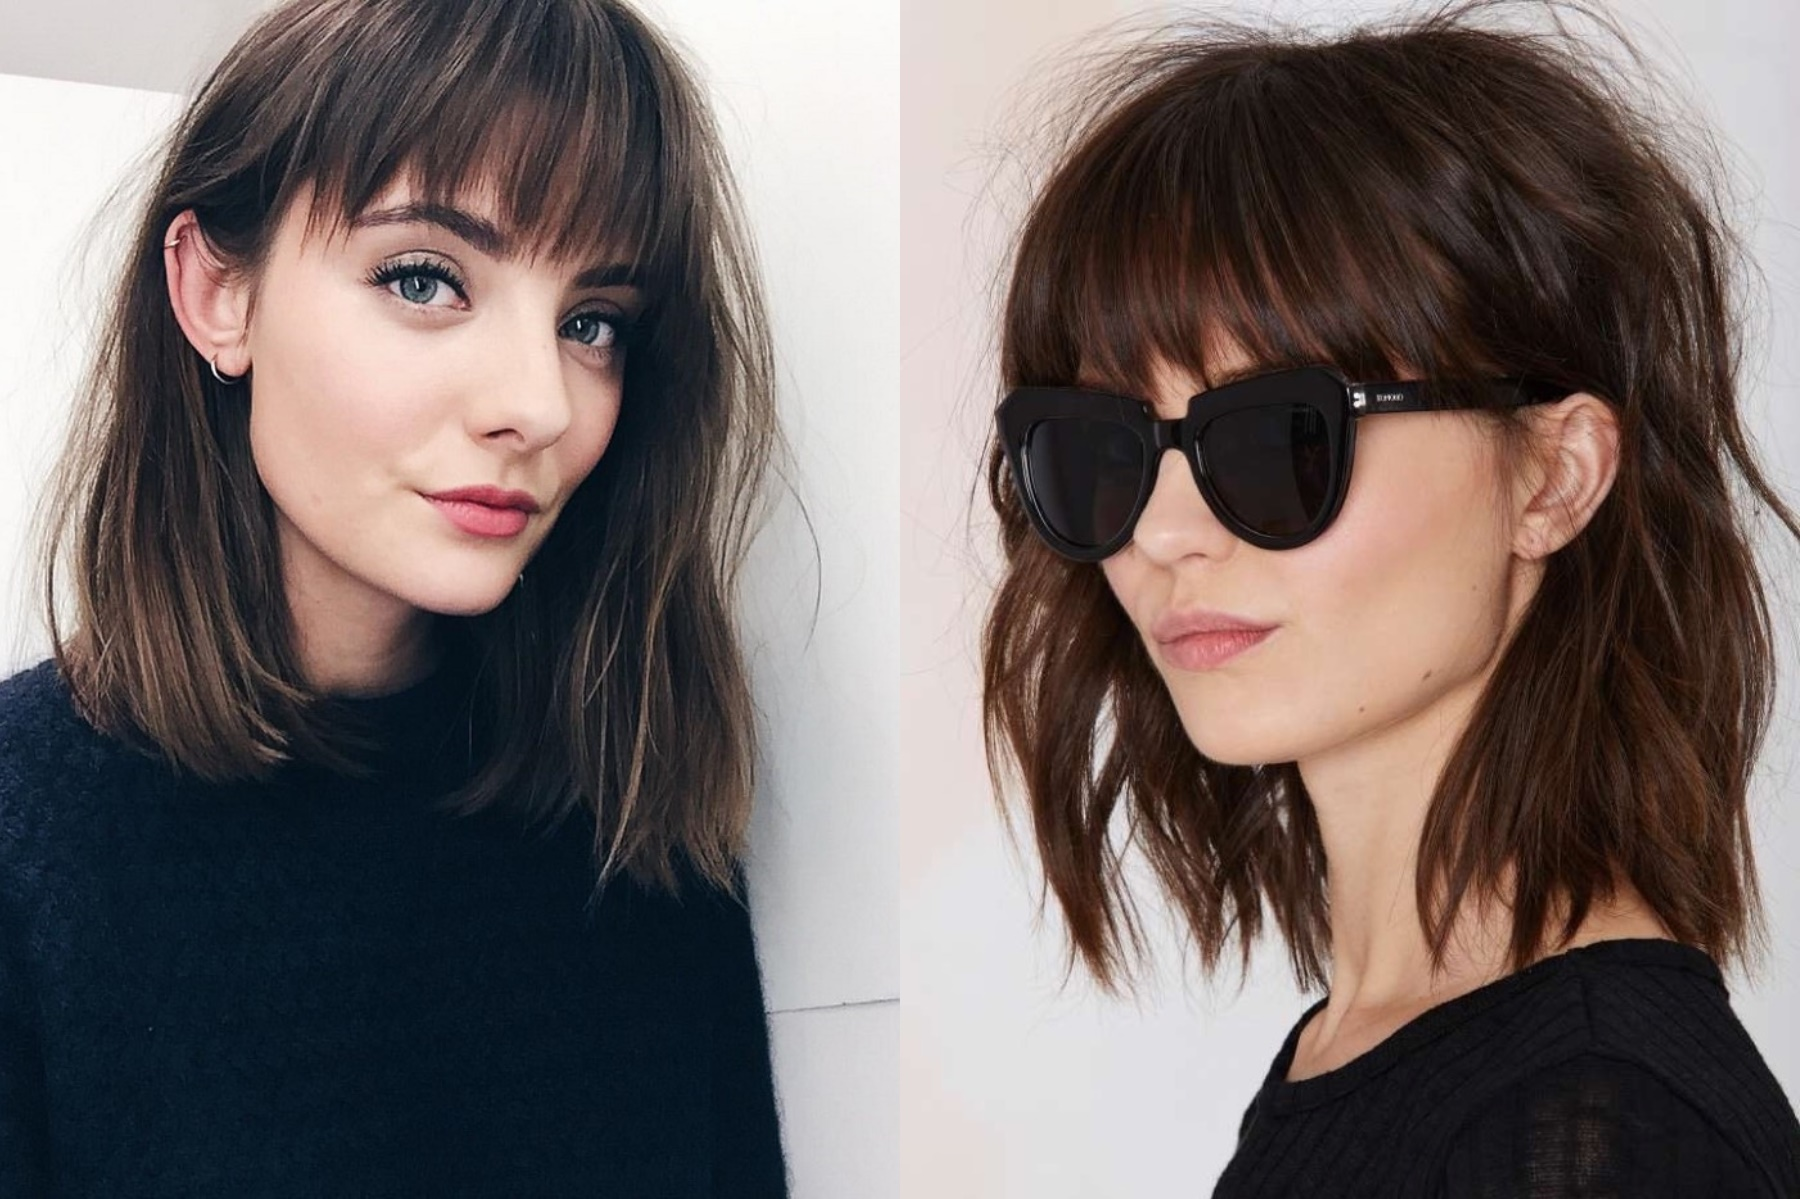 Latest Ragged Bangs 2018 For Women's Hairstyles 1